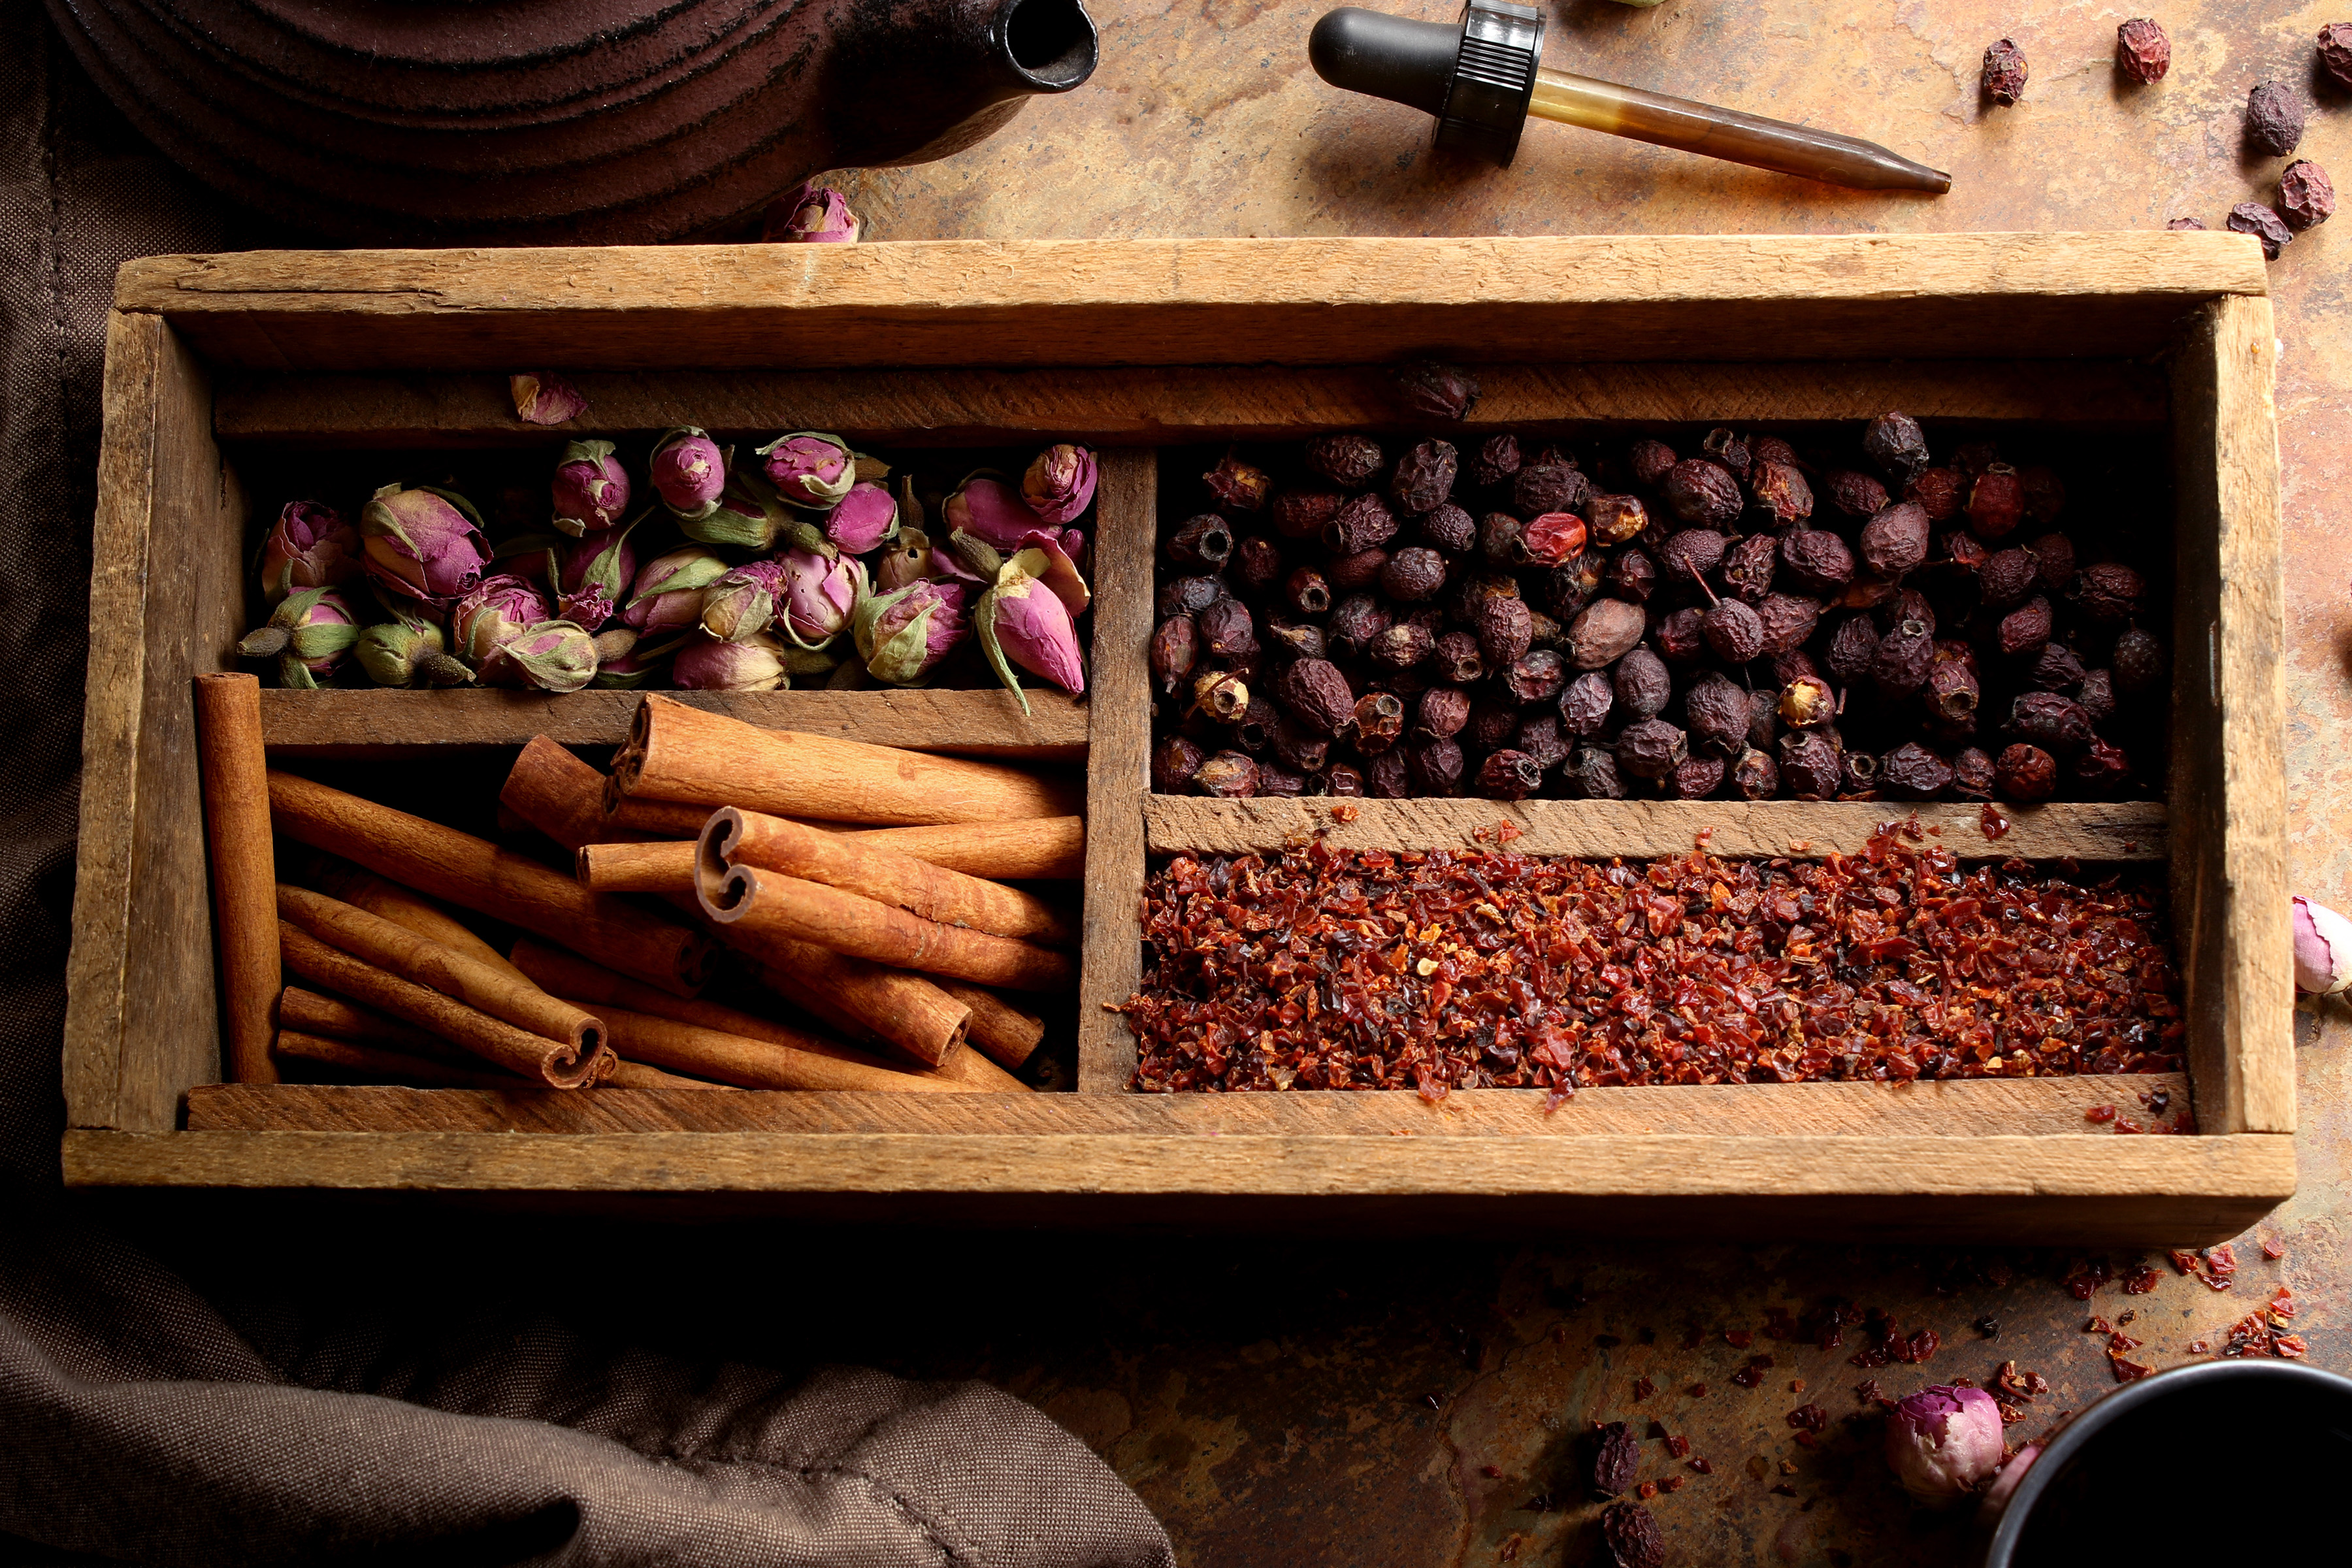 Various herbs for heartache or helping with the blues are arranged in a vintage wooden box. Herbs like rose buds, cinnamon, rosehips, and hawthorn are all helpful when tackling sadness or heartbreak.